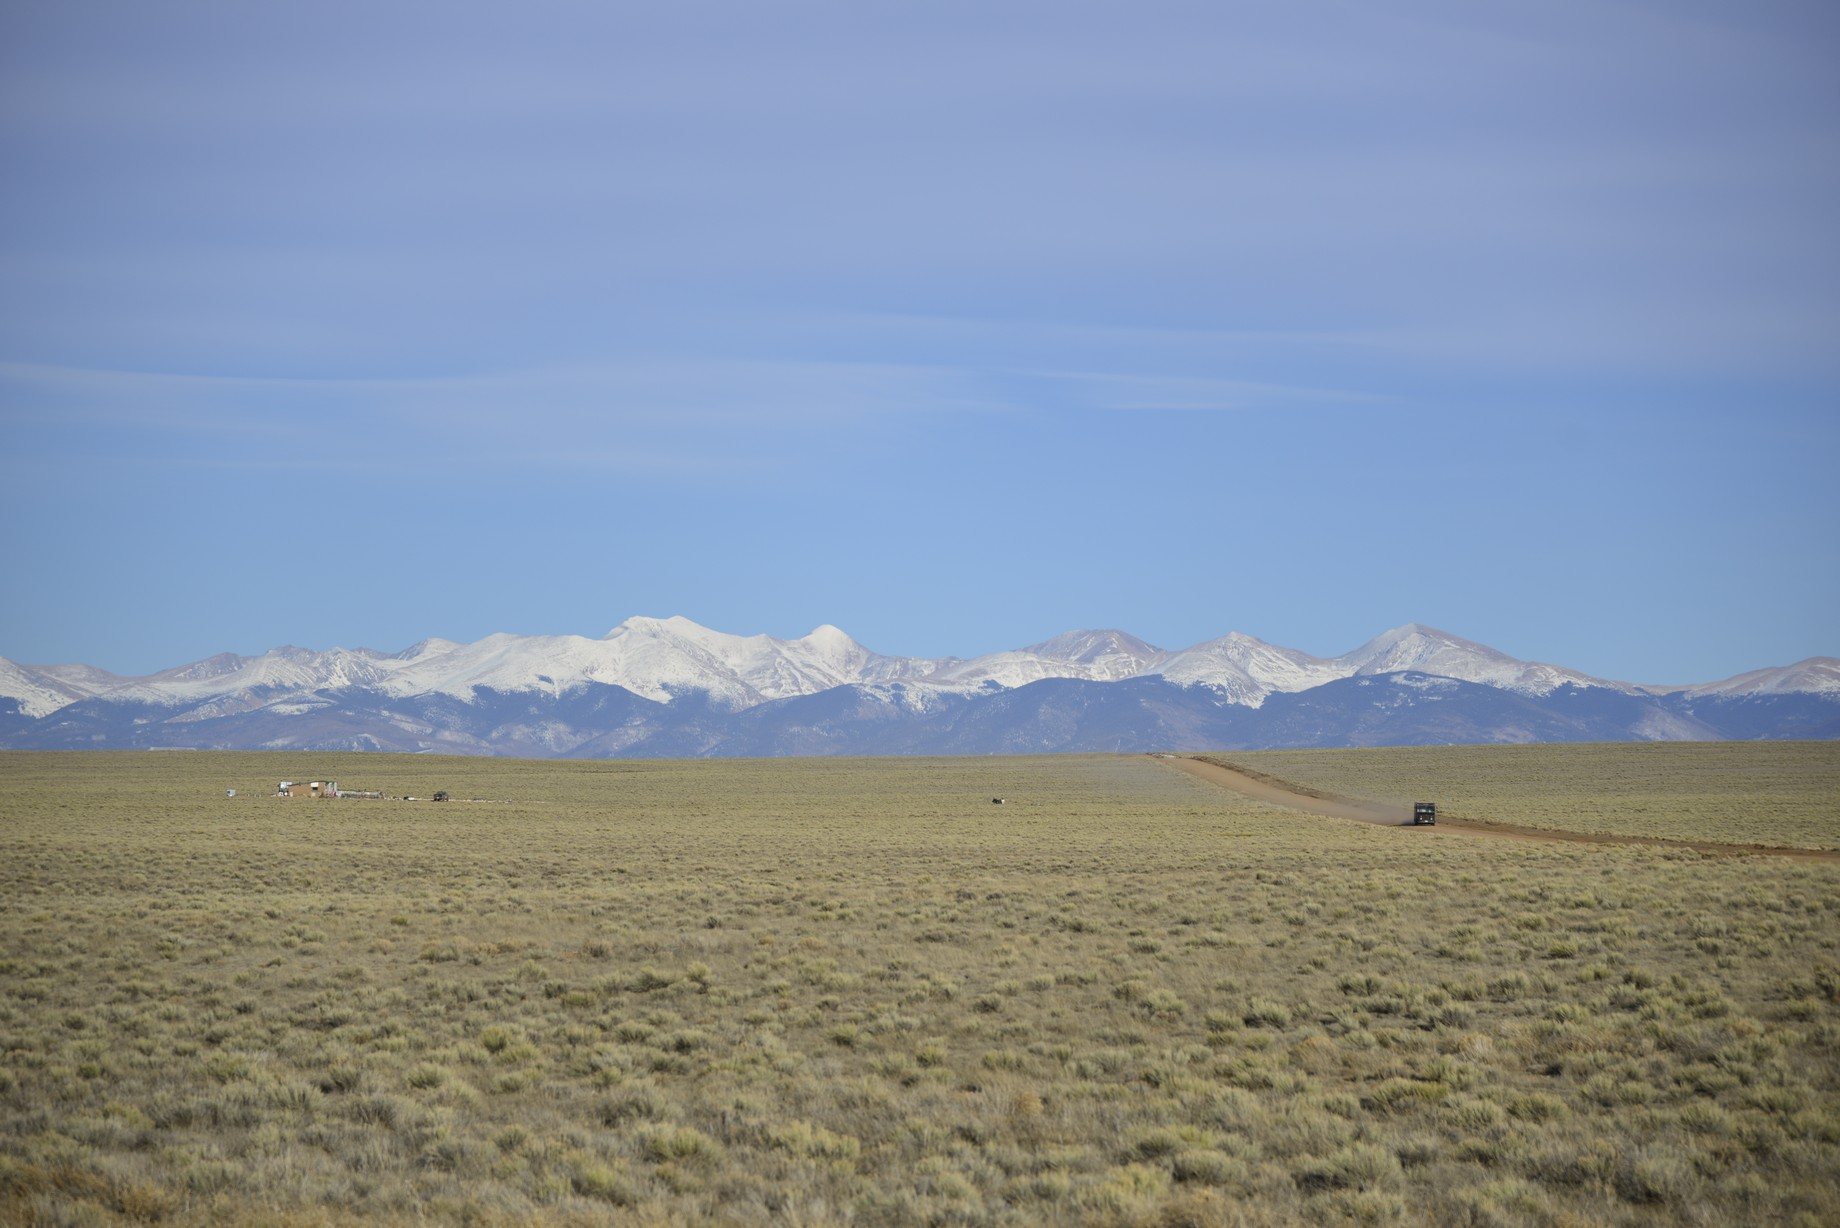 BIG SKY COUNTY PROPERTY – 5 Acres in Southern Colorado – Ready for you Now – Only $2800 (Parcel # 715-327-10)